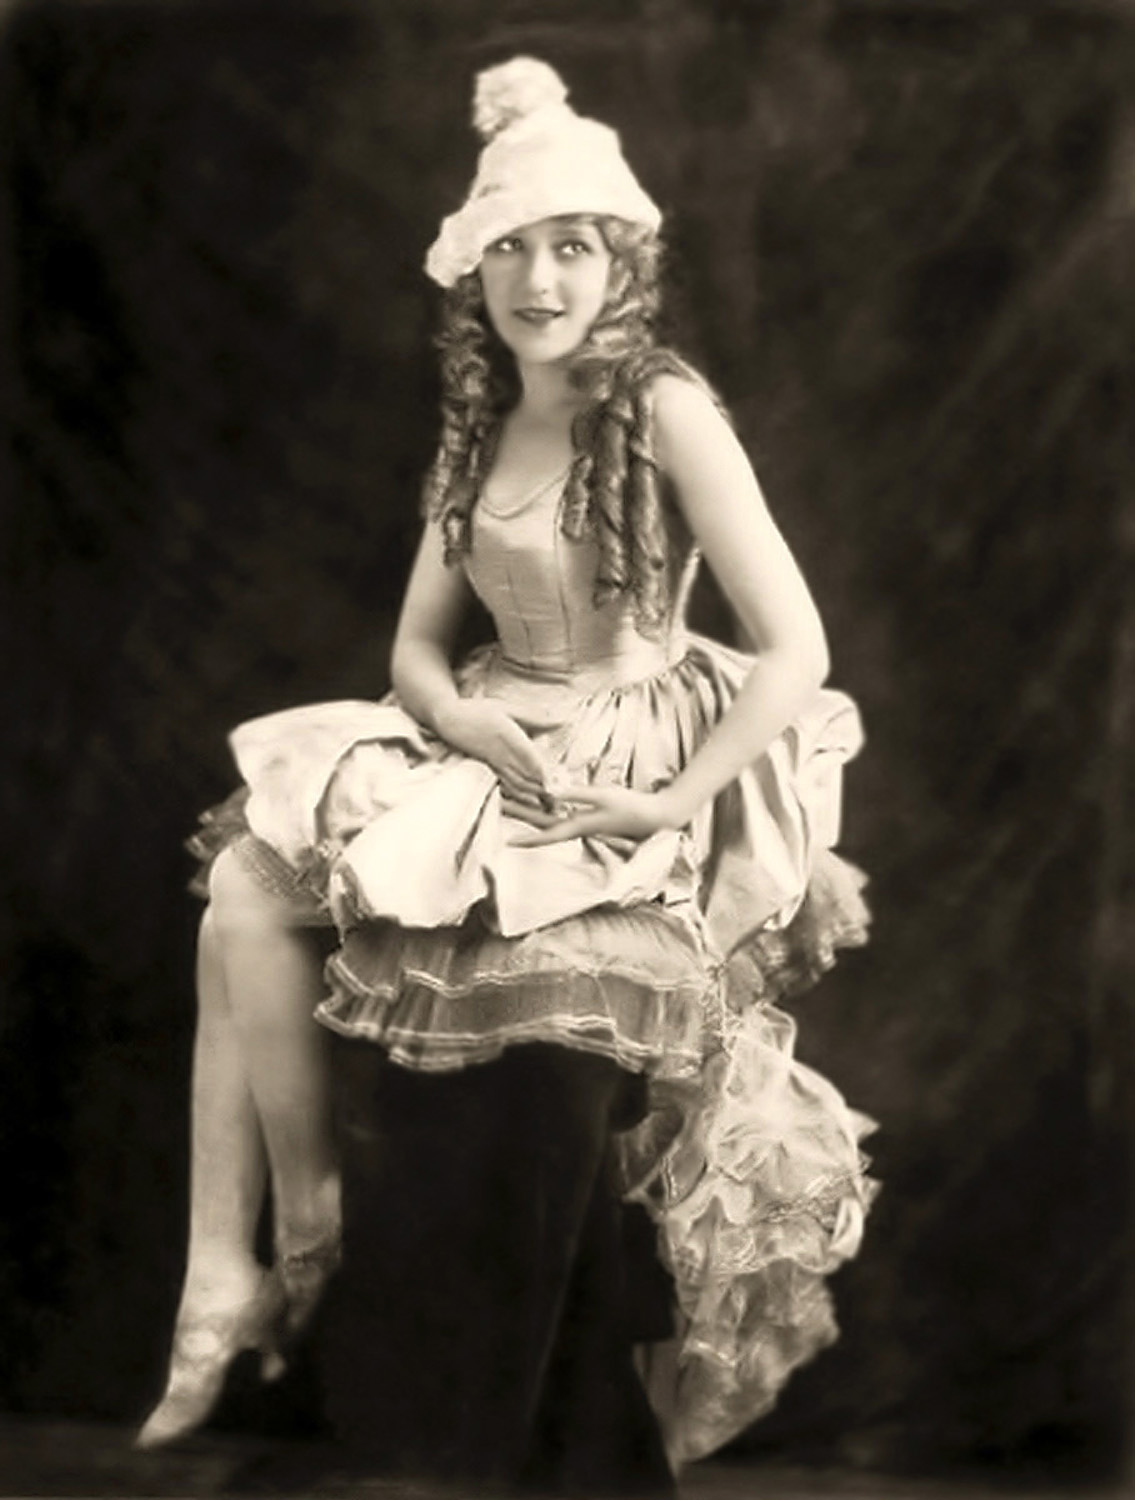 Puppy Love Preschool Style Muse Mary Pickford